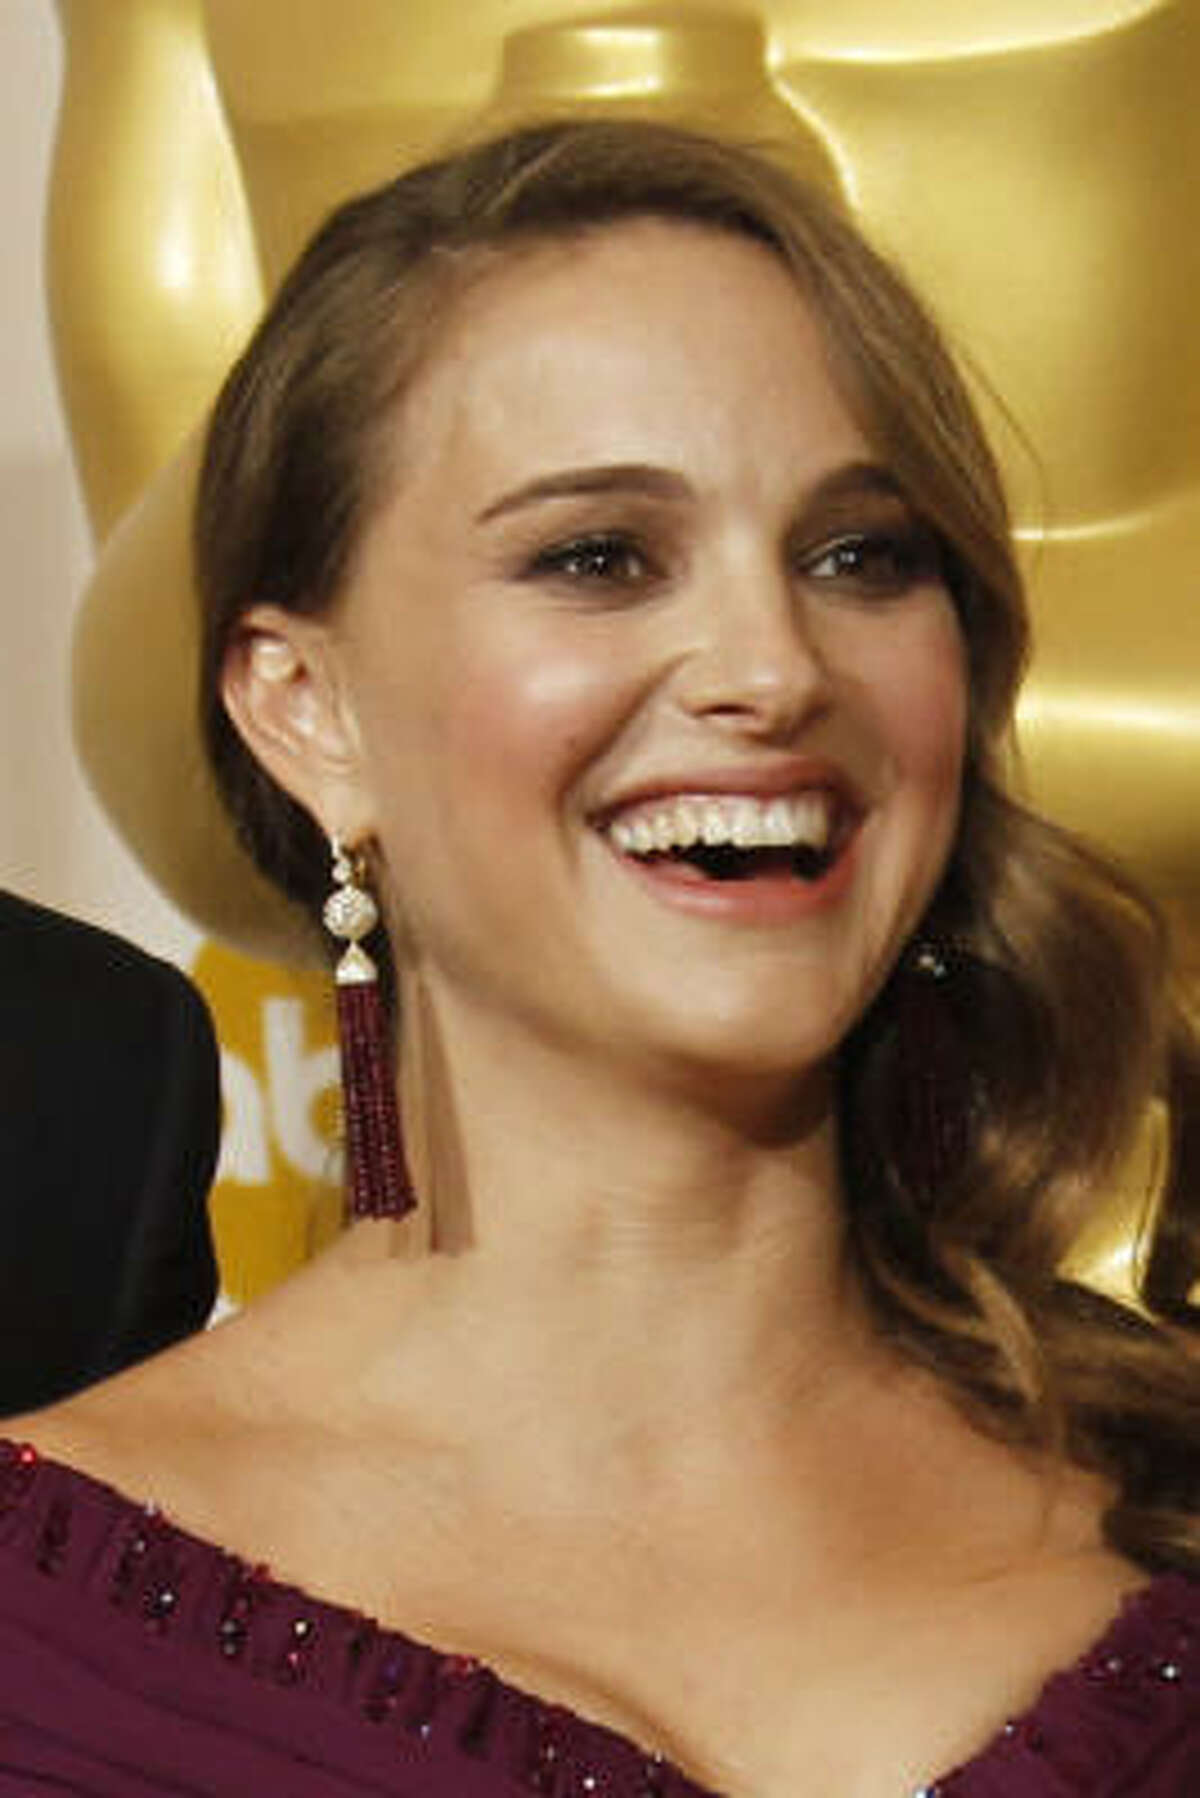 Natalie Portman drew criticism from Mike Huckabee because she's pregnant but not married.